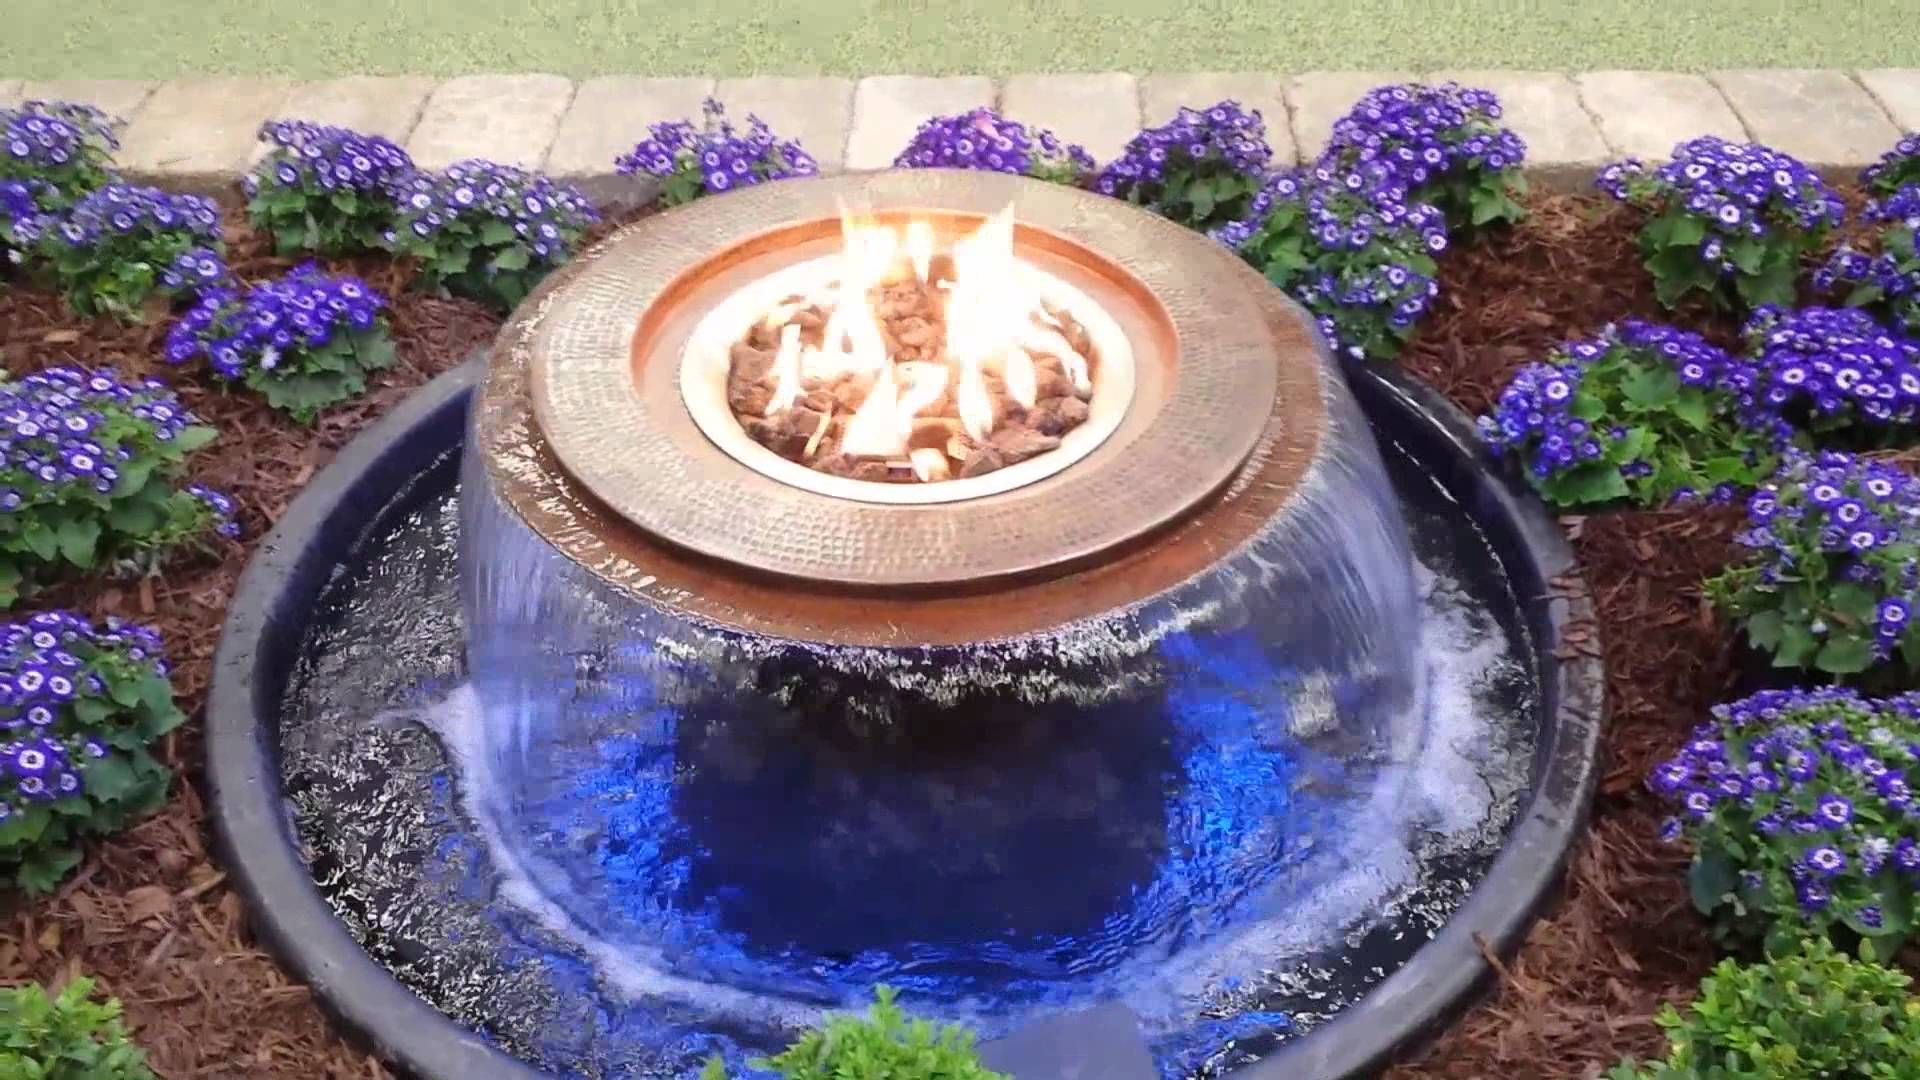 Home And Garden Show Fire And Water From Landstyle Design And Construction